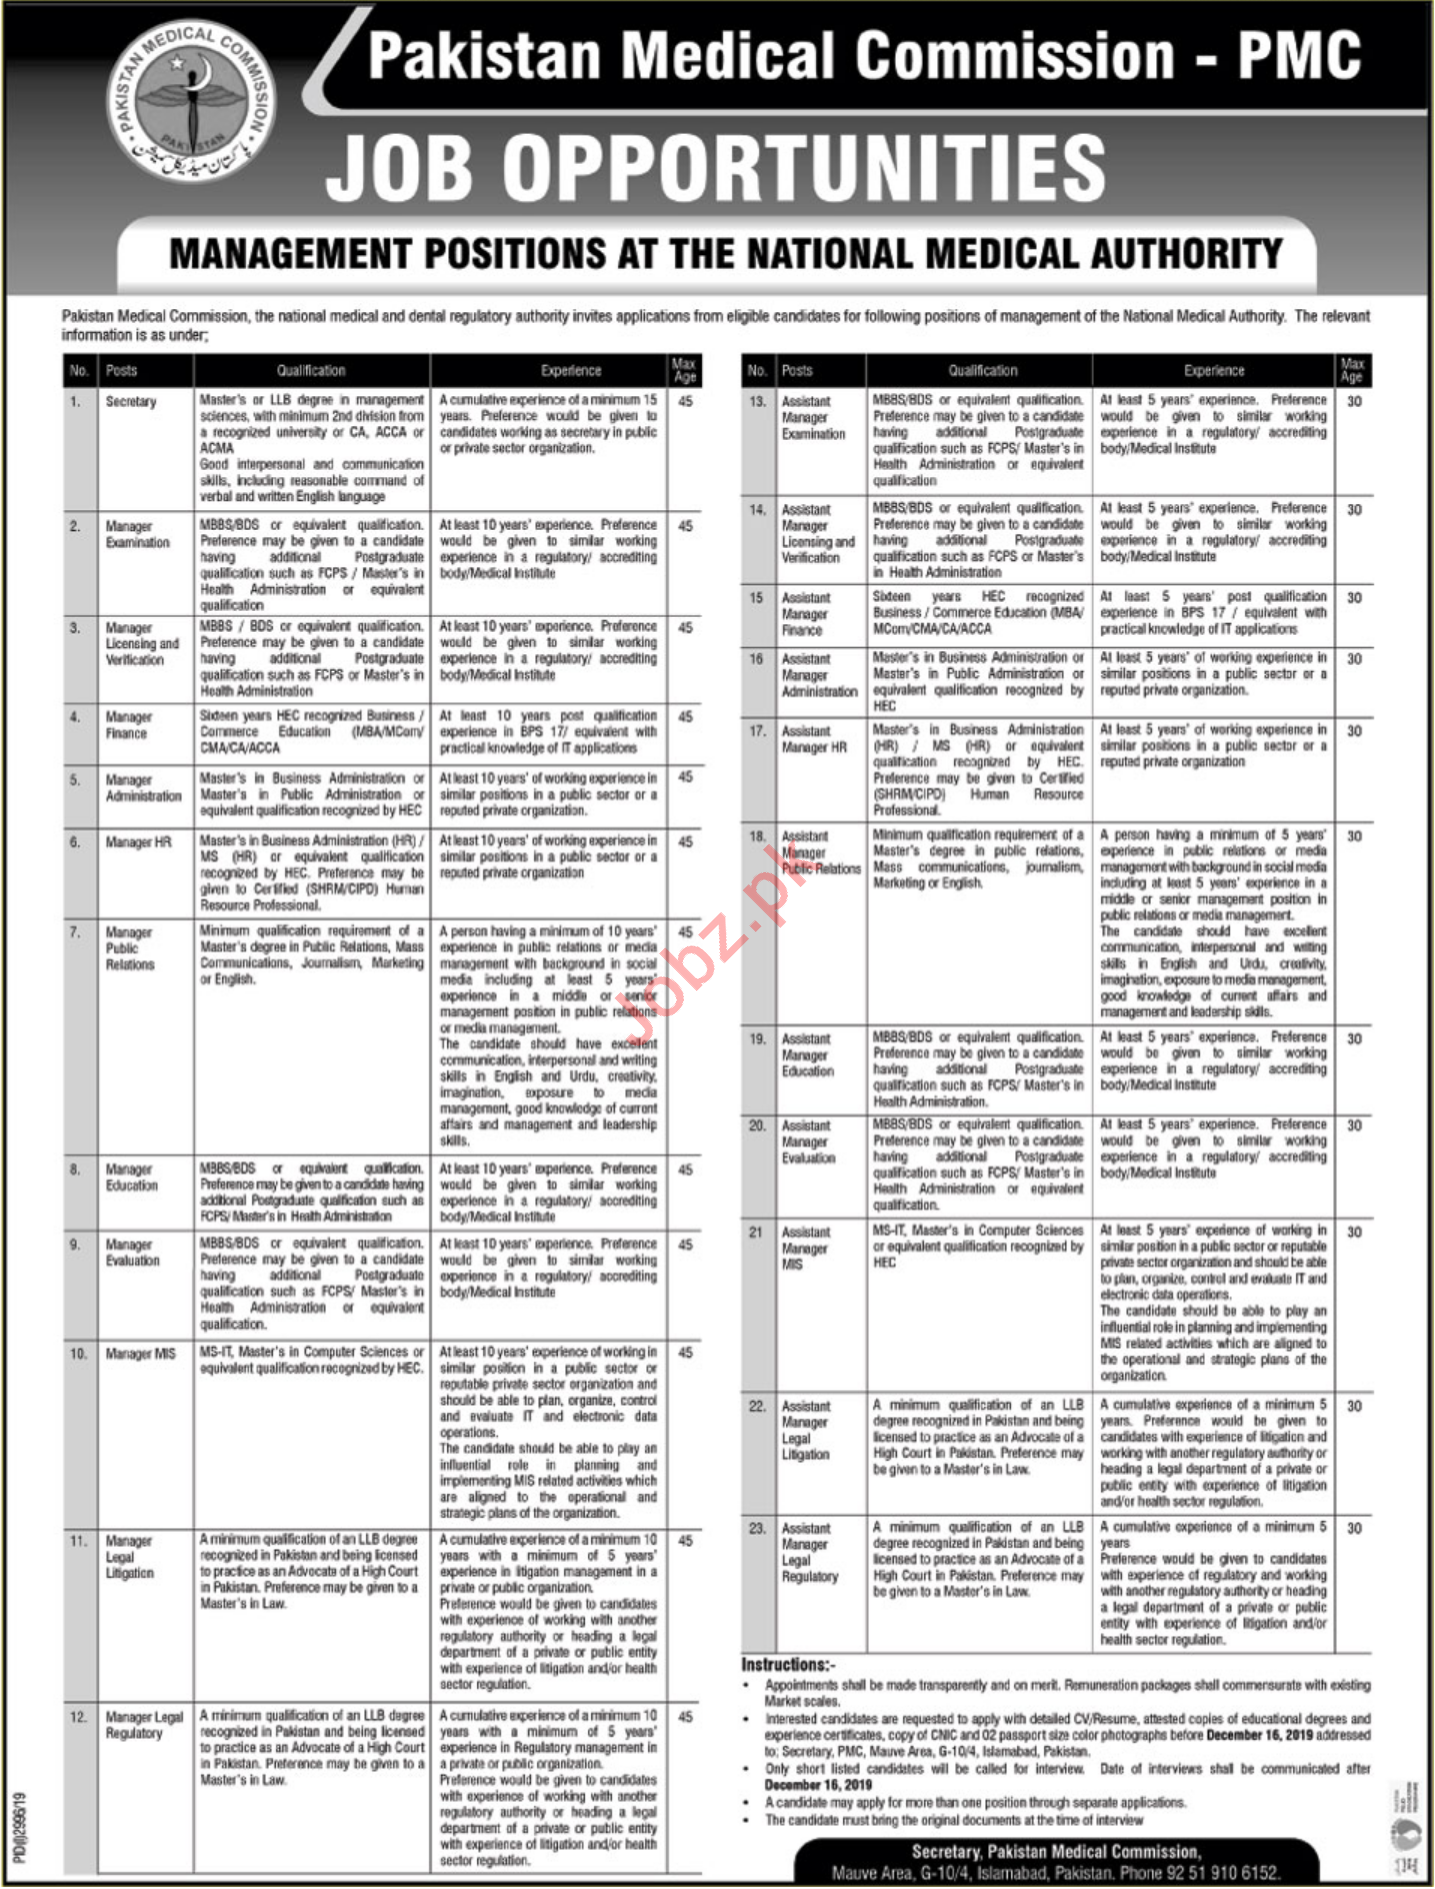 Pakistan Medical Commissions PMC Islamabad Jobs for Managers